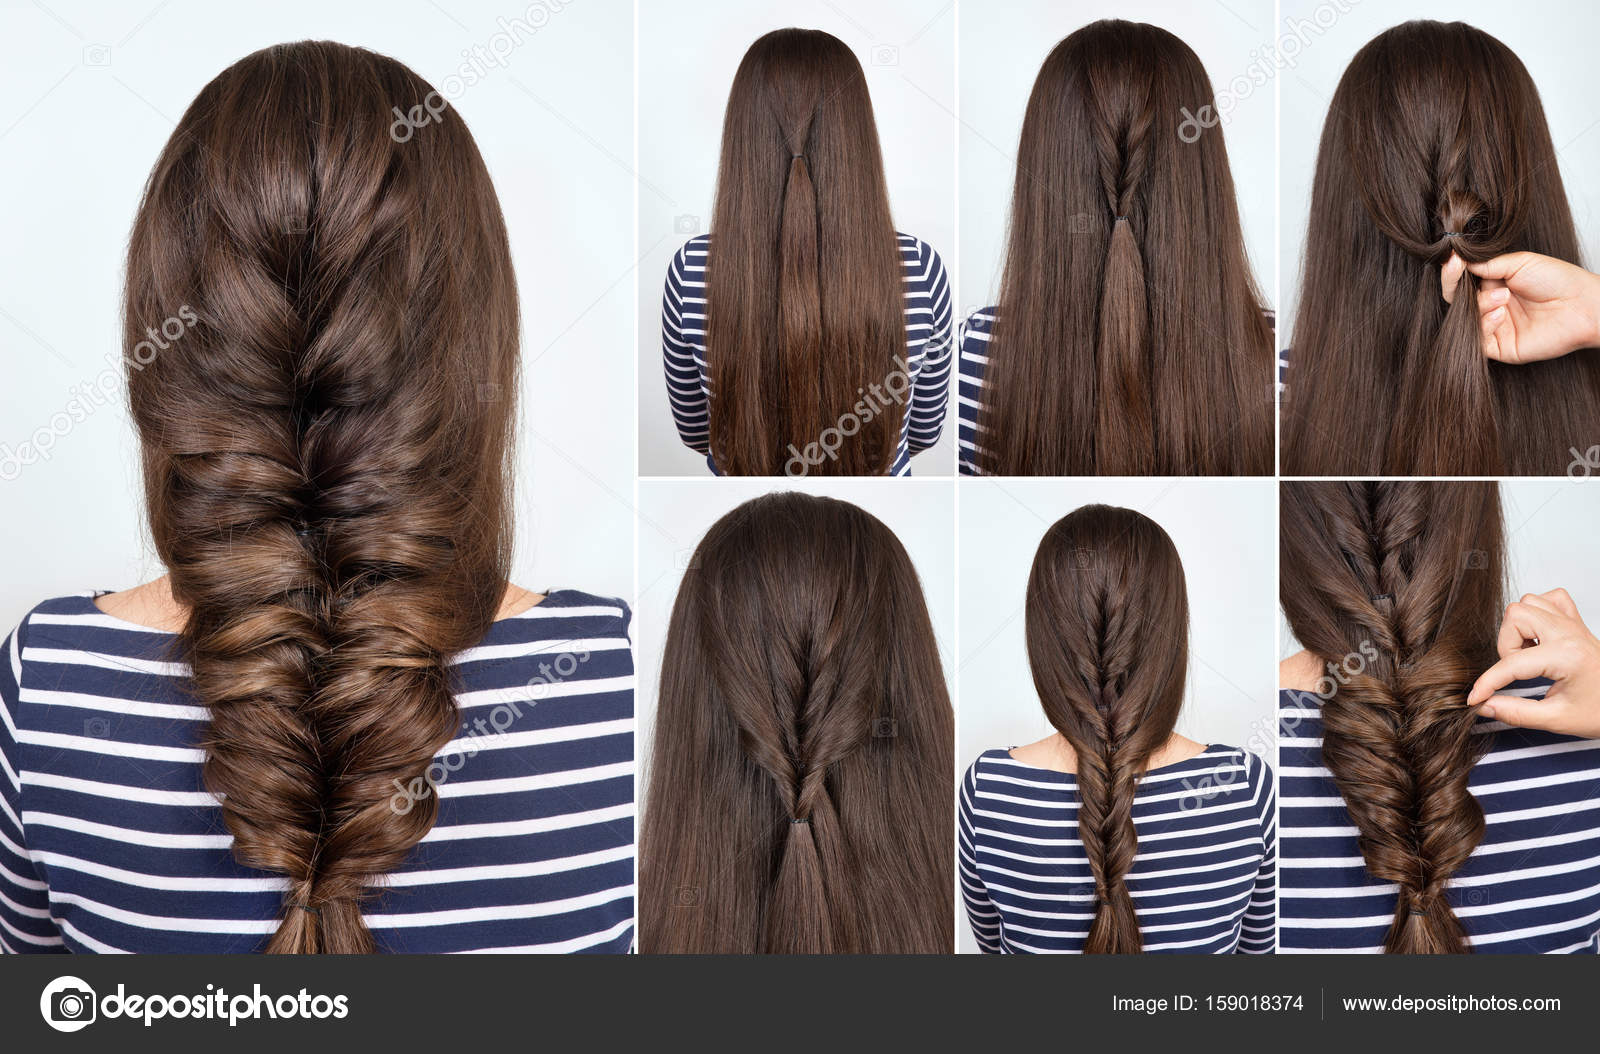 Hairstyle Braid For Party Tutorial Stock Photo Alterphoto 159018374